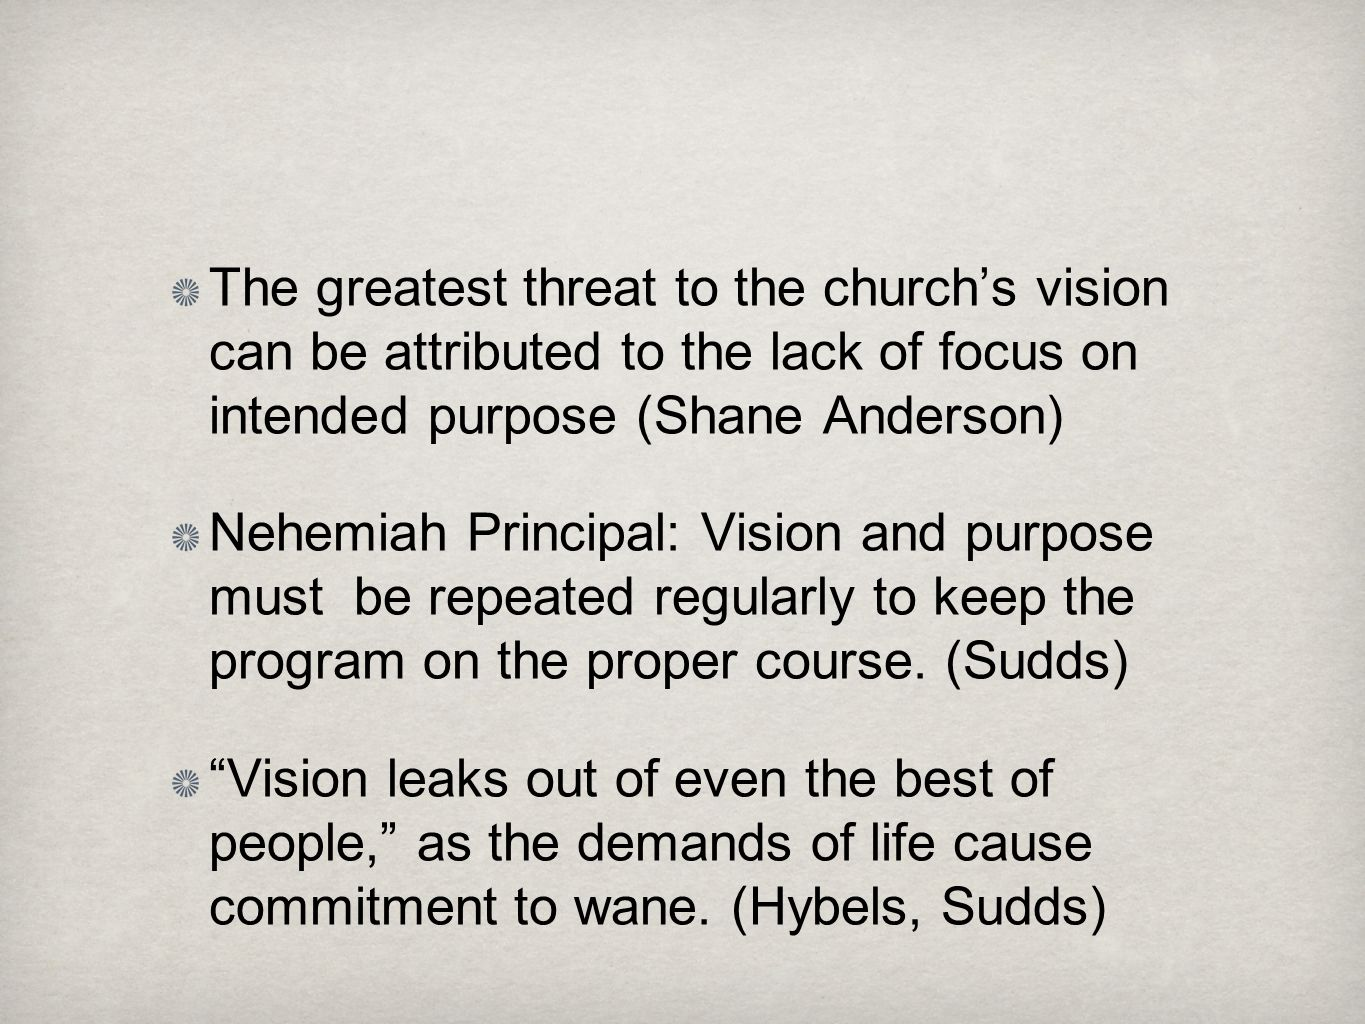 The greatest threat to the church's vision can be attributed to the lack of focus on intended purpose (Shane Anderson)